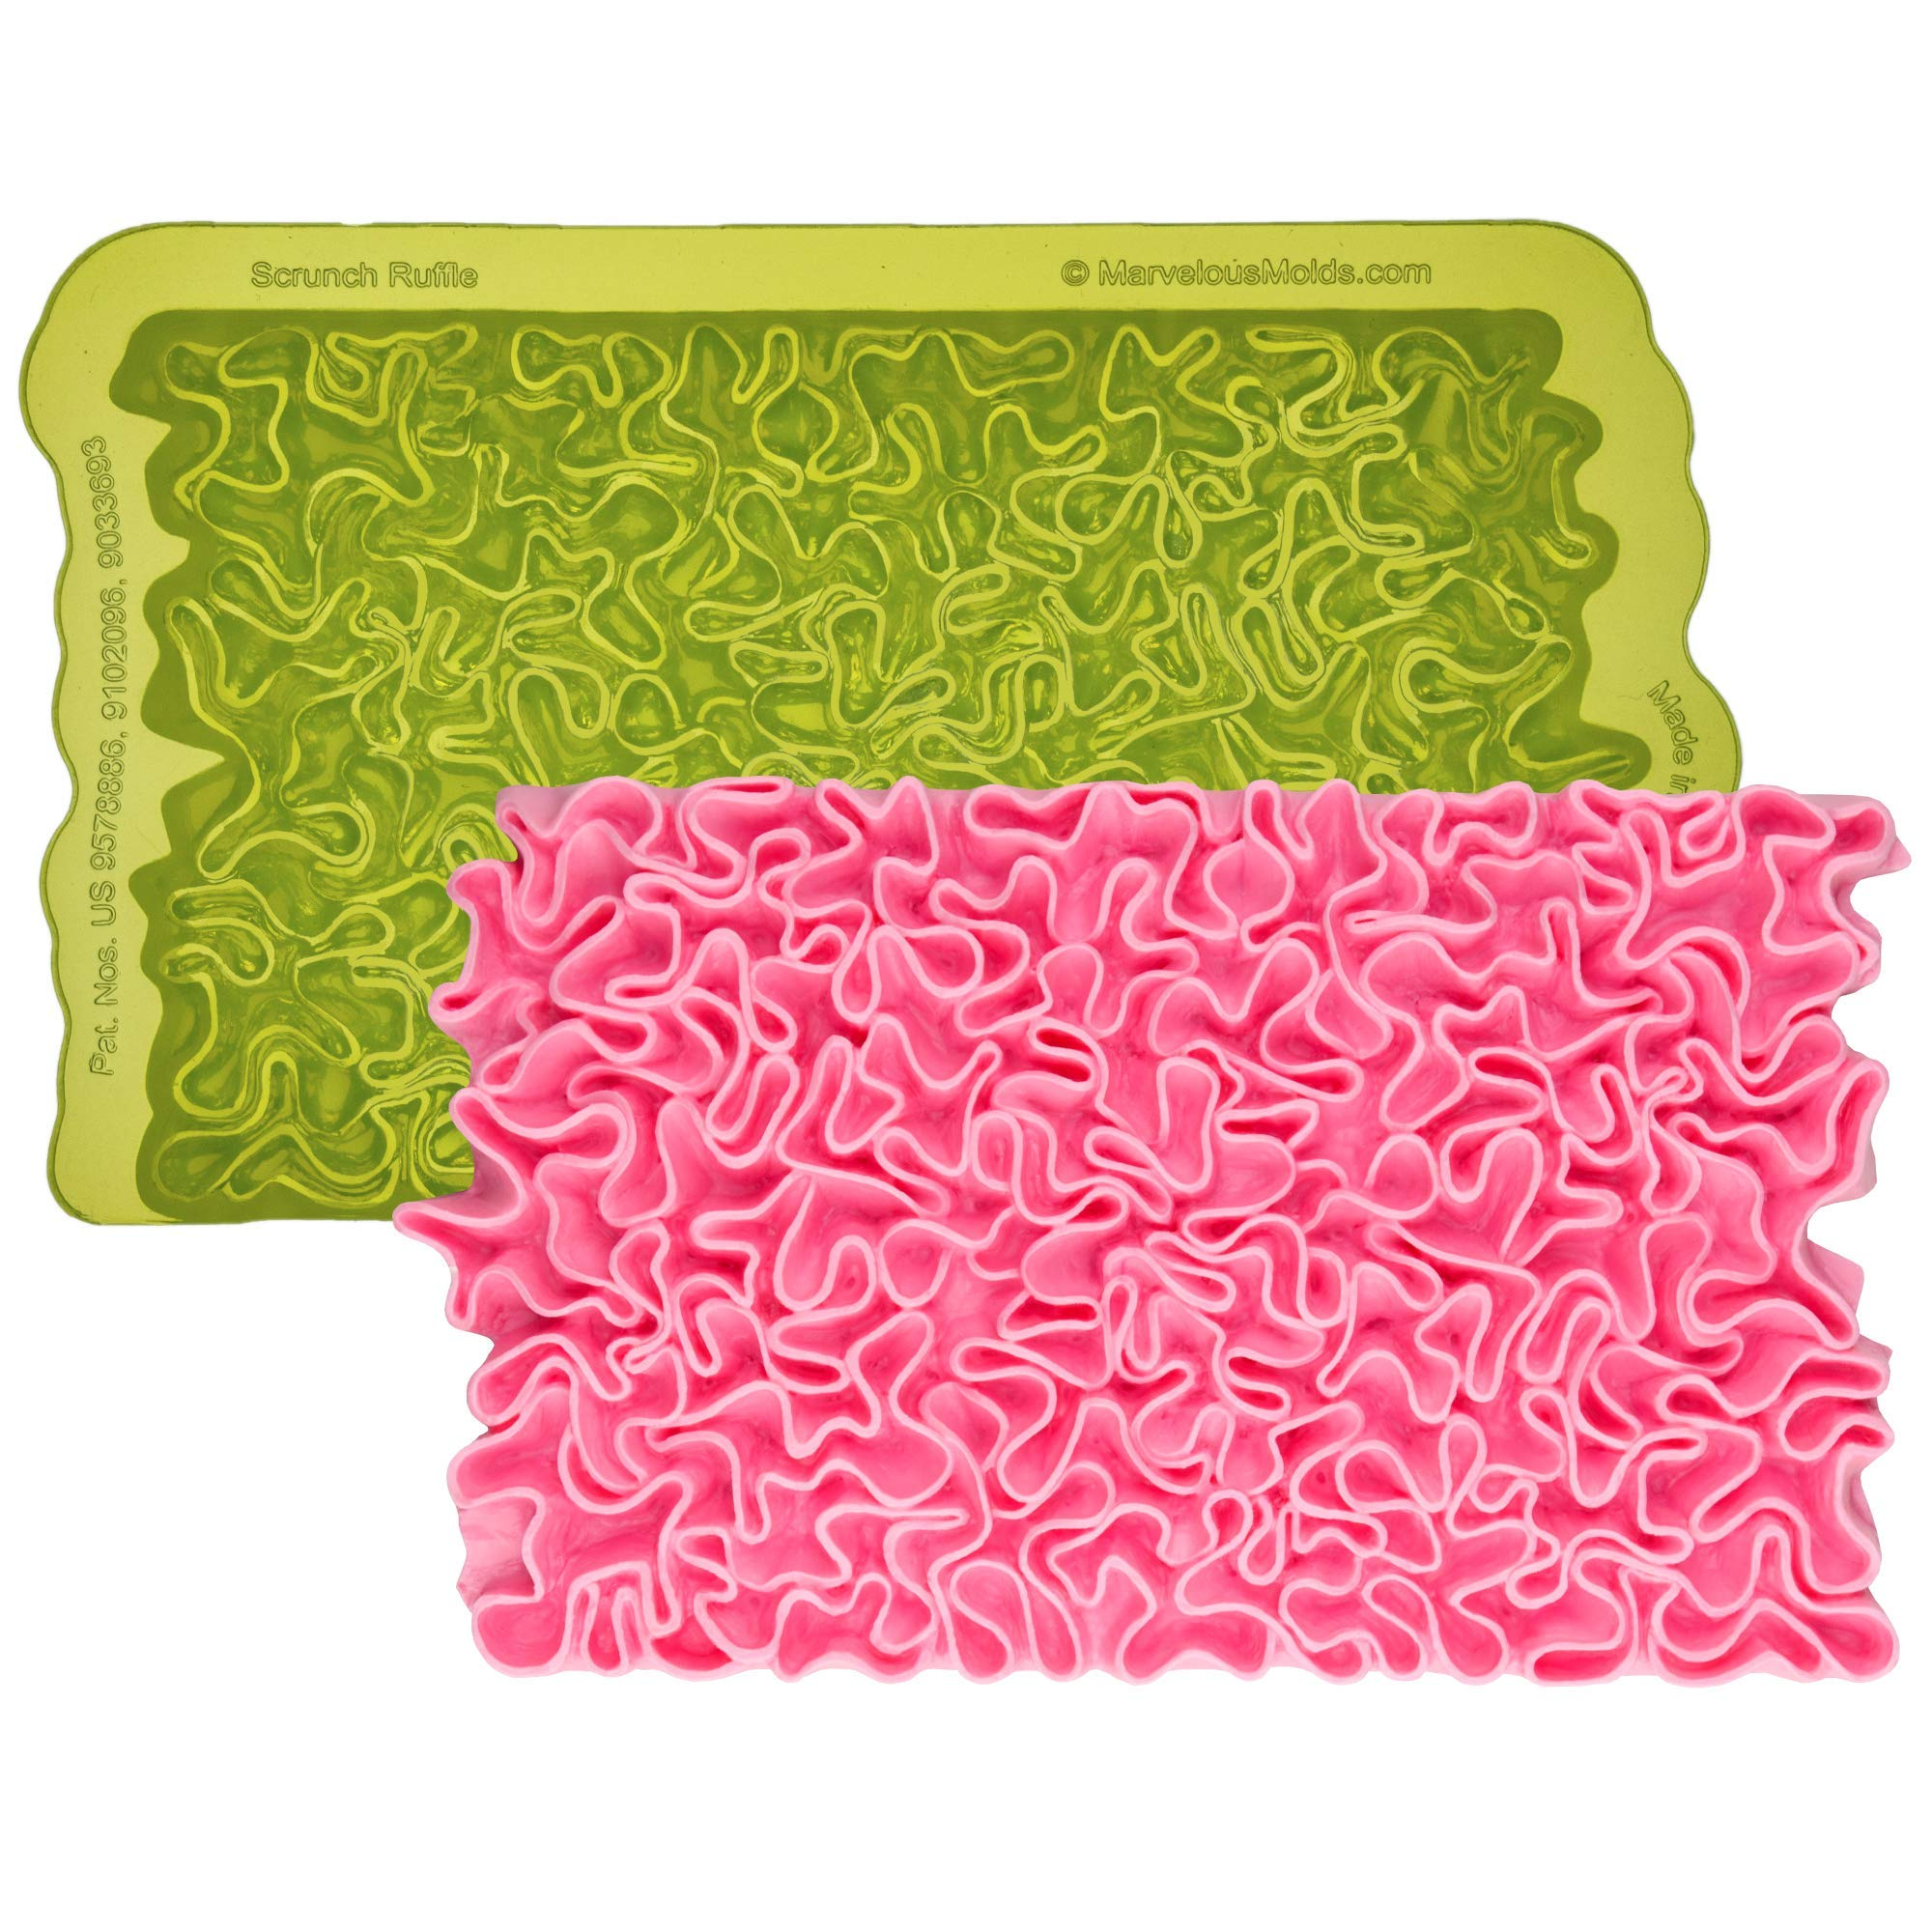 Marvelous Molds Scrunch Ruffle Simpress Silicone Mold | Cake Decorating with Fondant Gum Paste Icing by Marvelous Molds